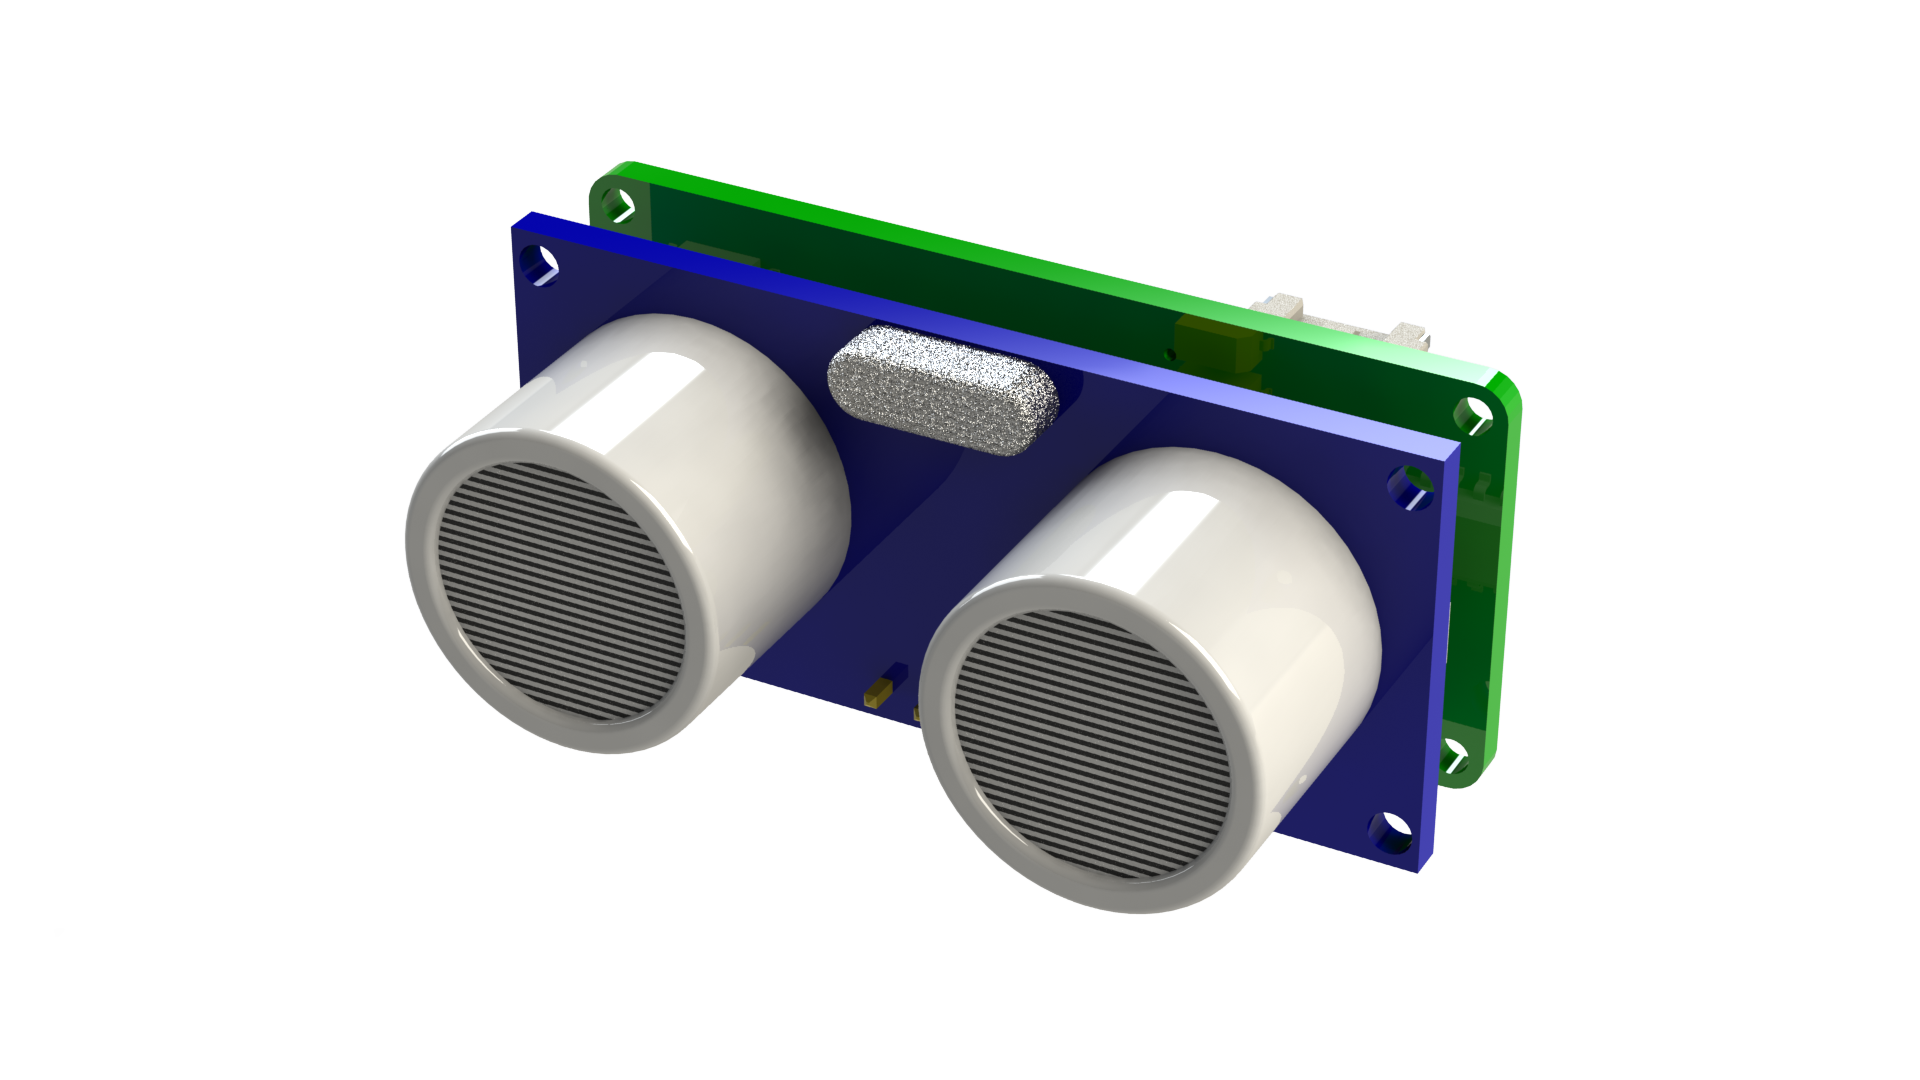 Can Bus Ultrasonic Distance Sensor Lulus Blog Interfacing Sensors With Pic Microcontroller 3d Front View Of The